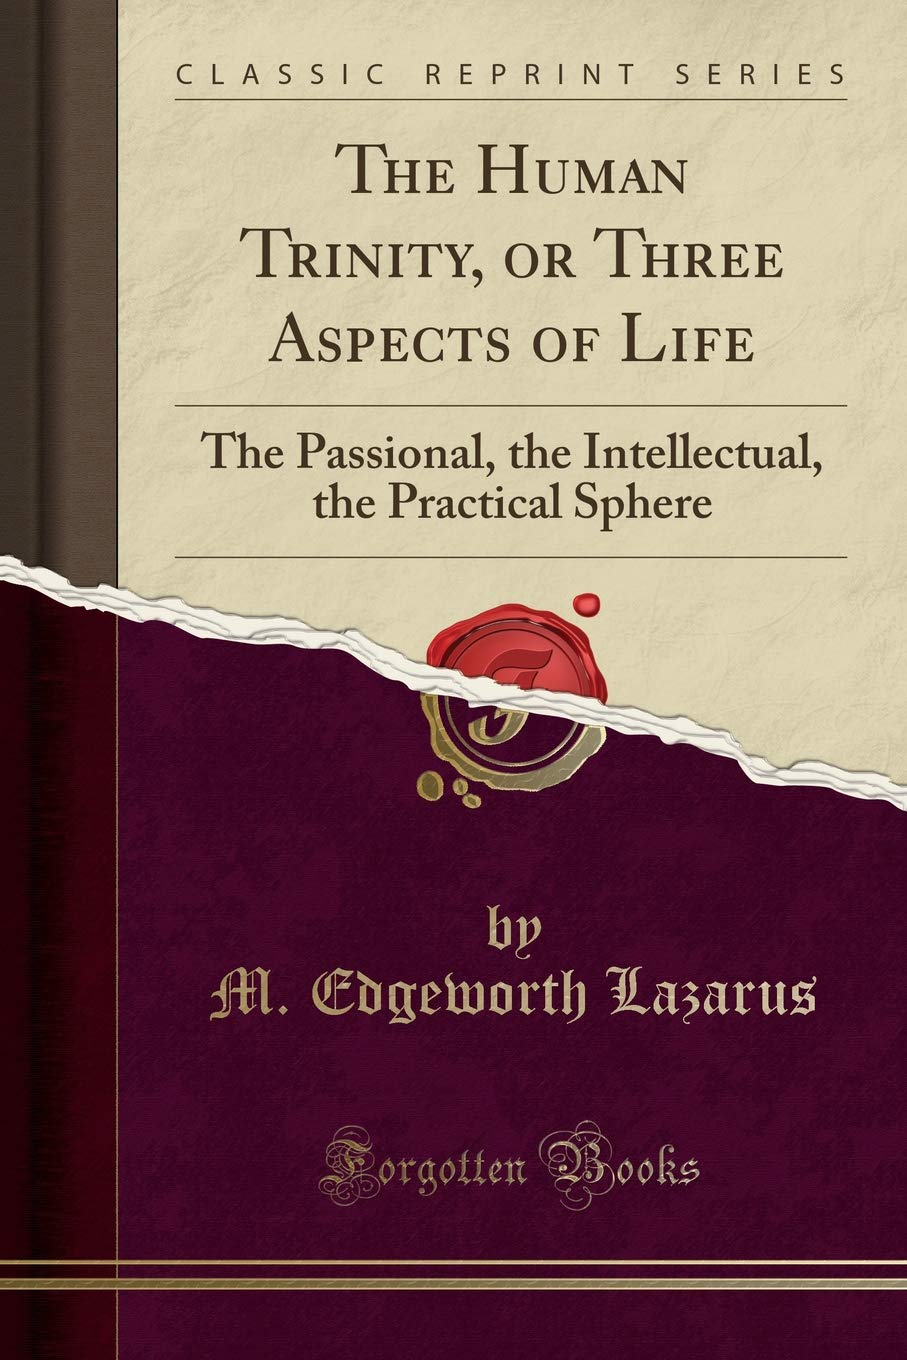 Read Online The Human Trinity, or Three Aspects of Life: The Passional, the Intellectual, the Practical Sphere (Classic Reprint) pdf